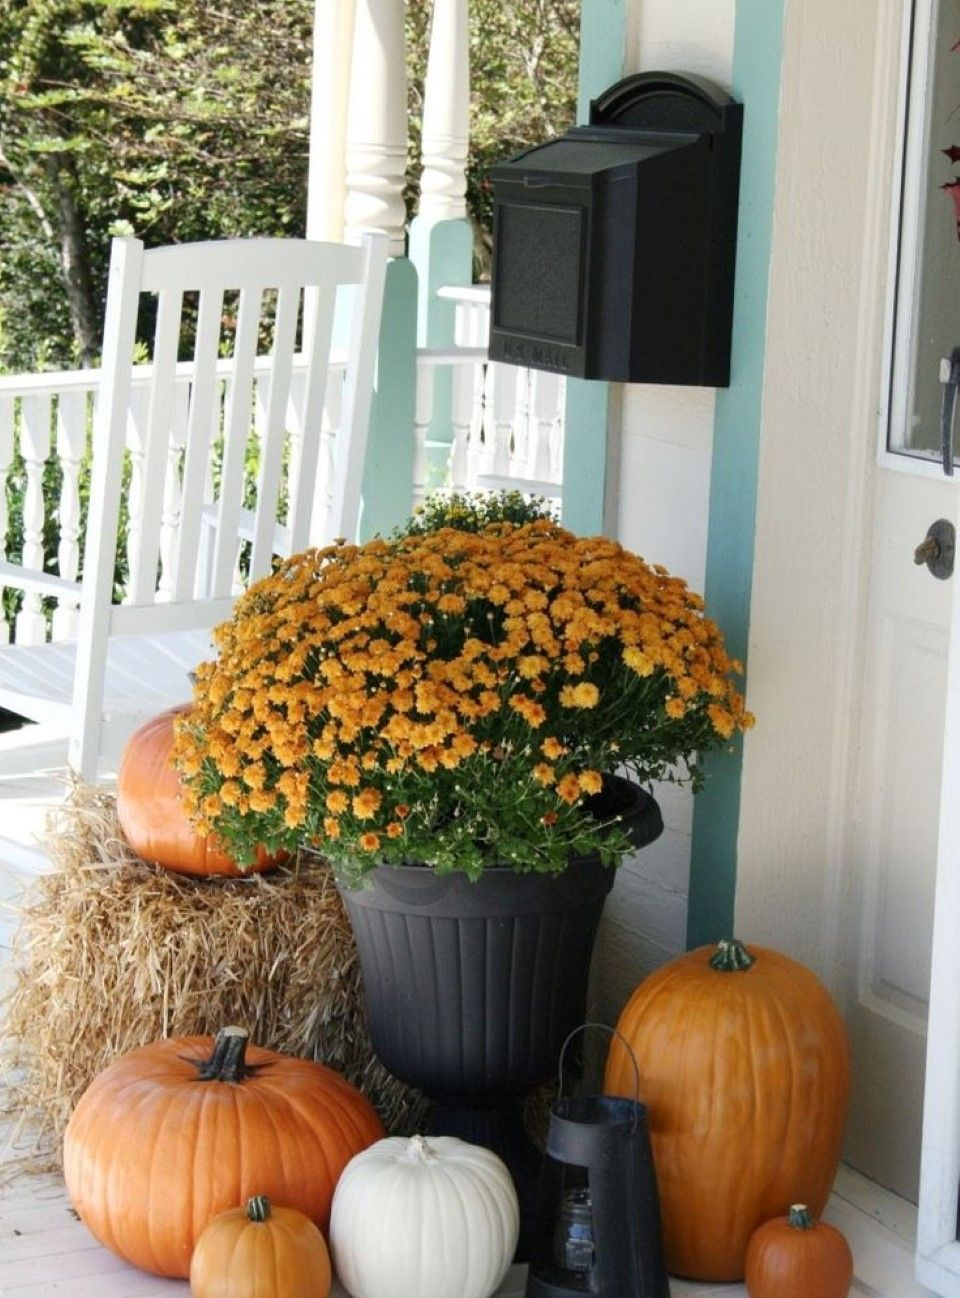 Mum Bouquet feat Orange and White Pumpkins plus Lantern with Wall Mounted Mail Box also Lovely Fall Decorating